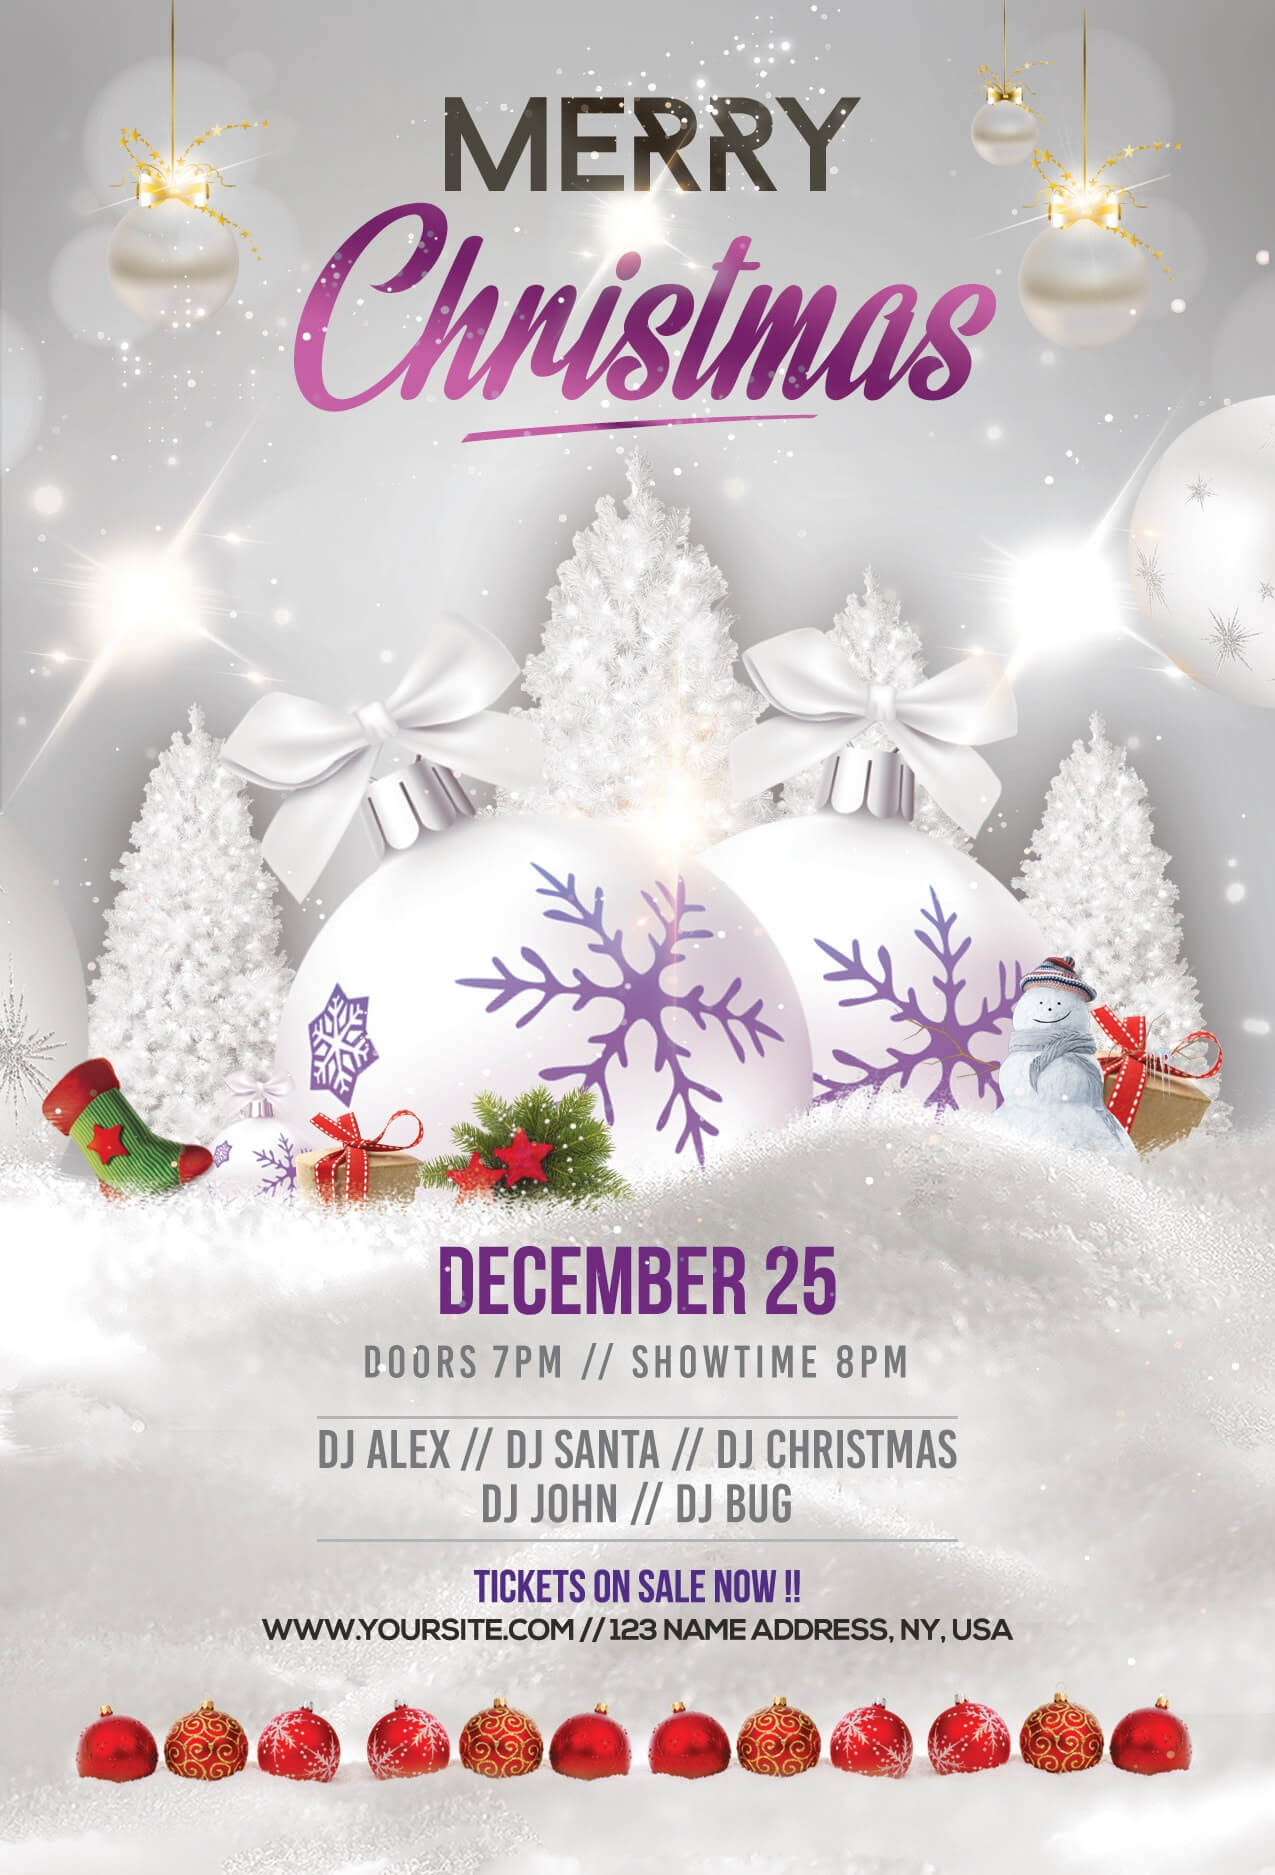 Merry Christmas & Holiday Free Psd Flyer Template - Free Psd In Christmas Brochure Templates Free